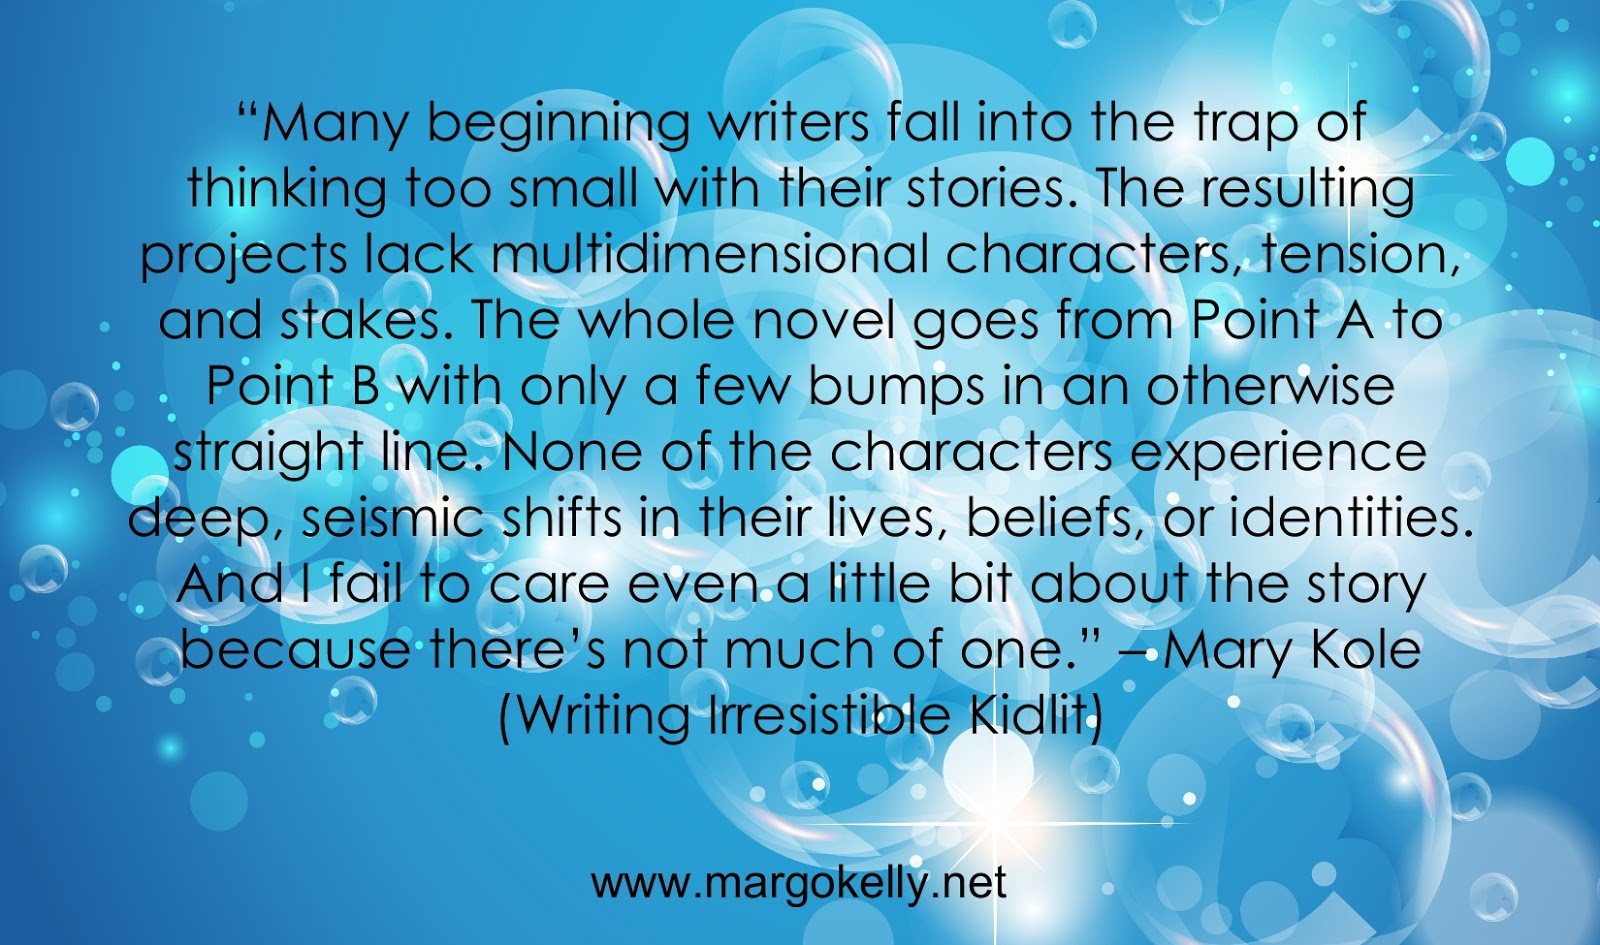 Margo Kelly 6 Inspiring Quotes To Help Develop Your Story Idea